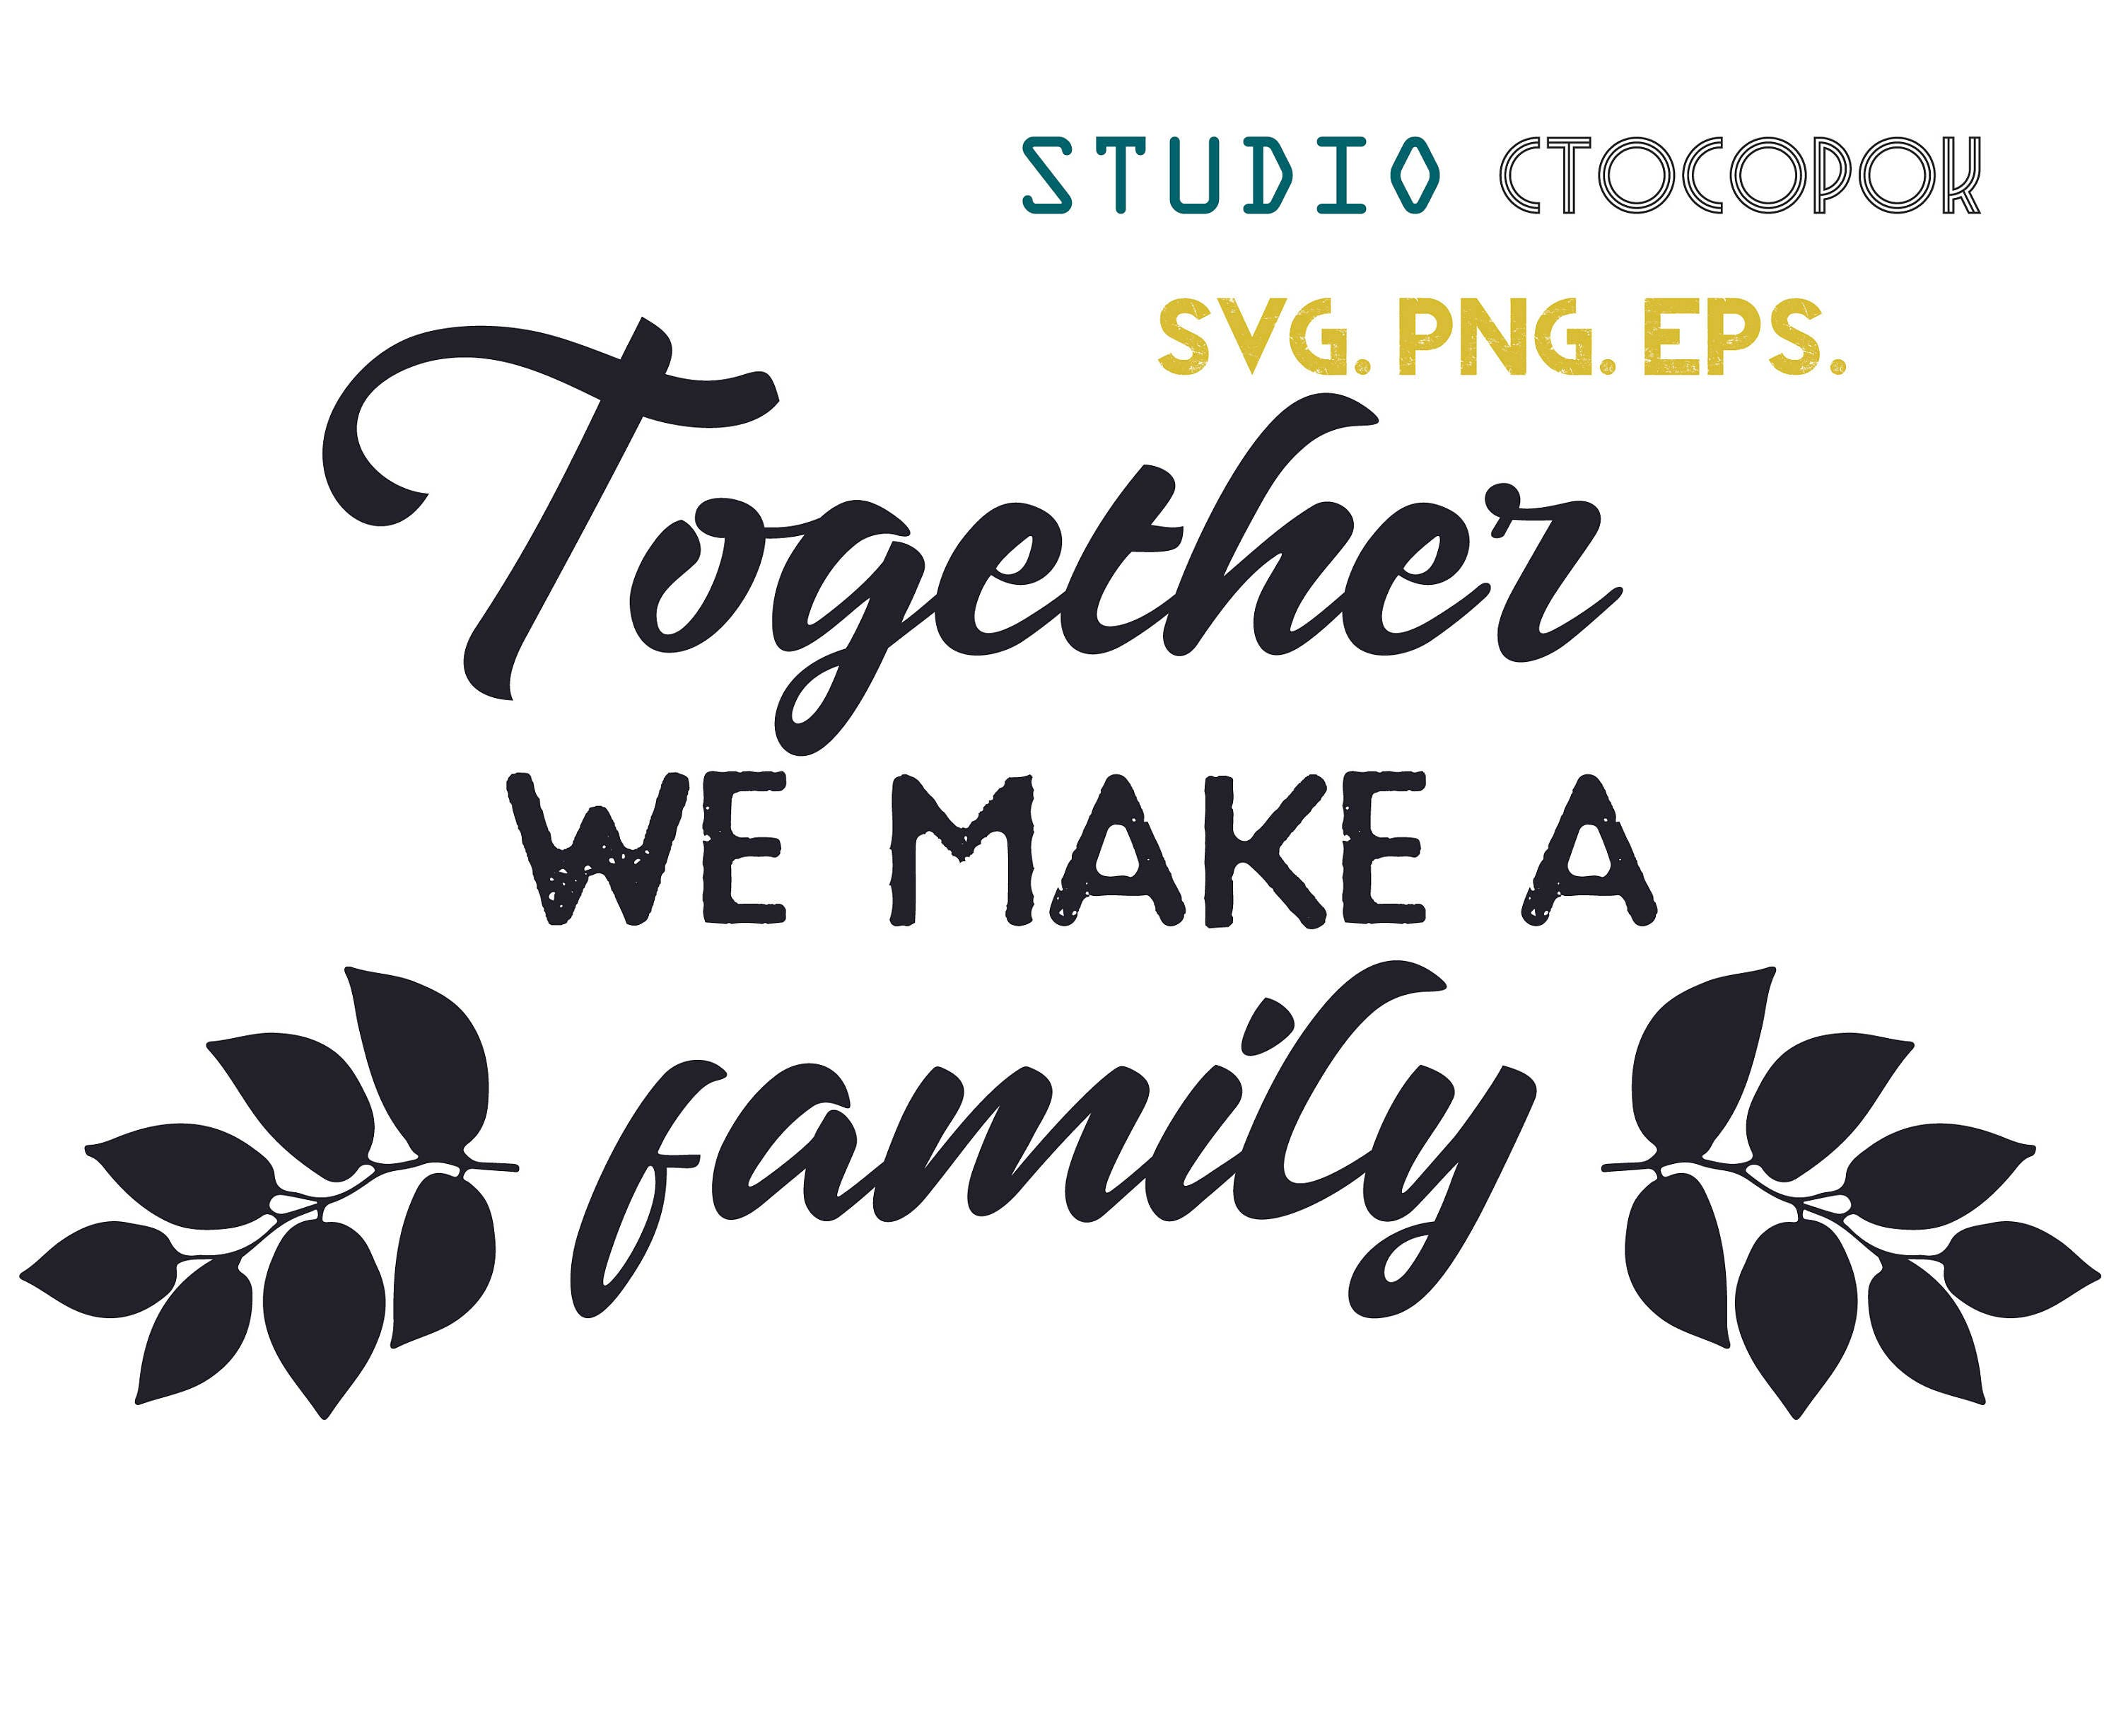 Family Quotes: Together We Make A Family SVG Home SVG Quotes Home Quote